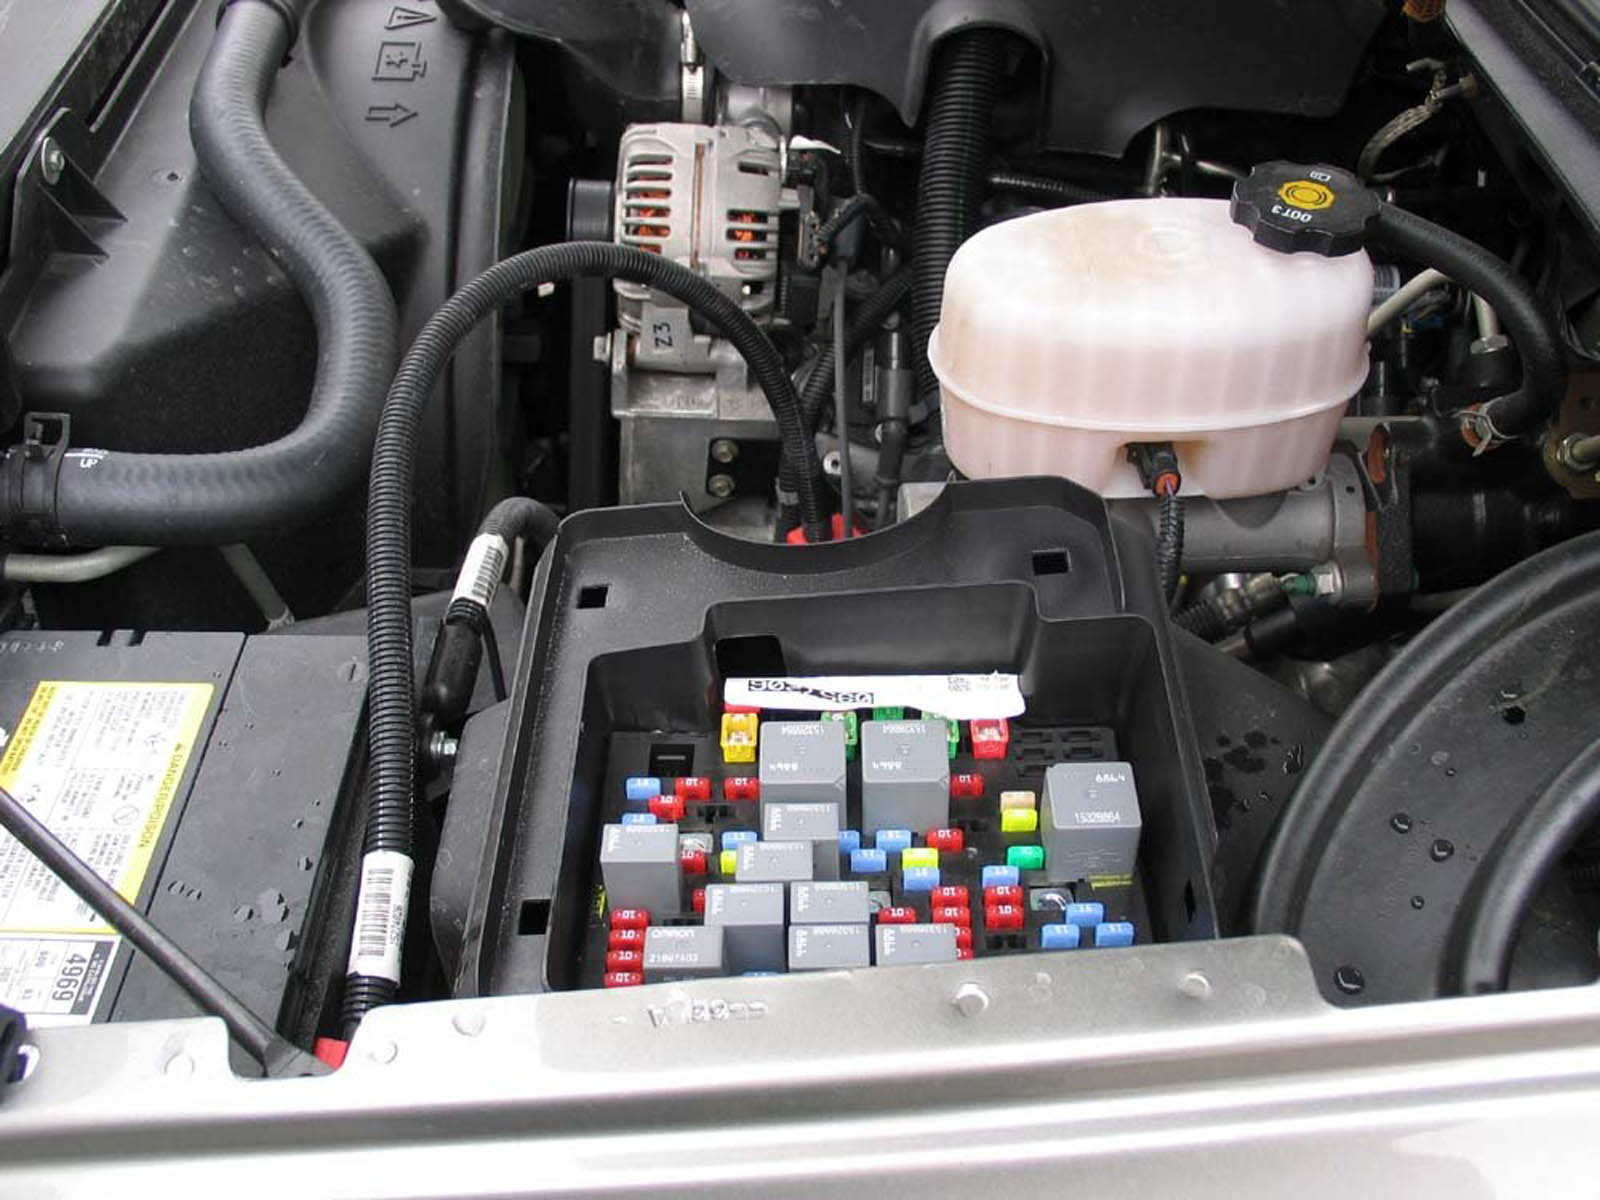 MMMay 27 Fuse Box 04 69845 chevrolet silverado gmt800 1999 2006 fuse box diagram chevroletforum 2010 chevy express 3500 fuse box location at bayanpartner.co